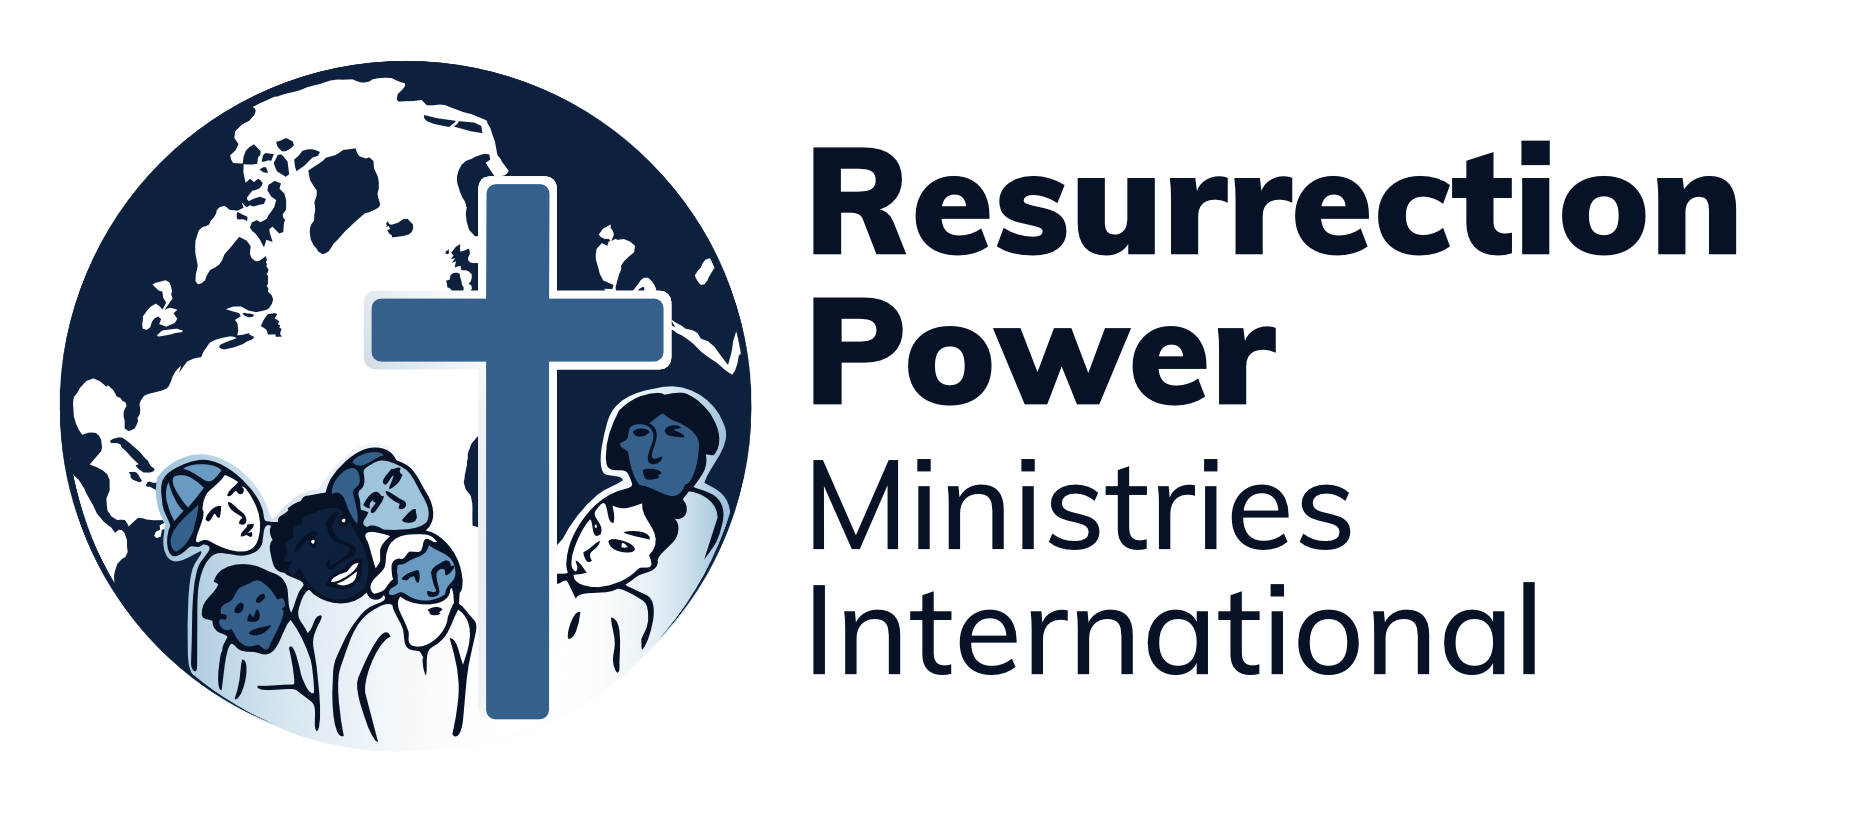 Resurrection Power Ministries International